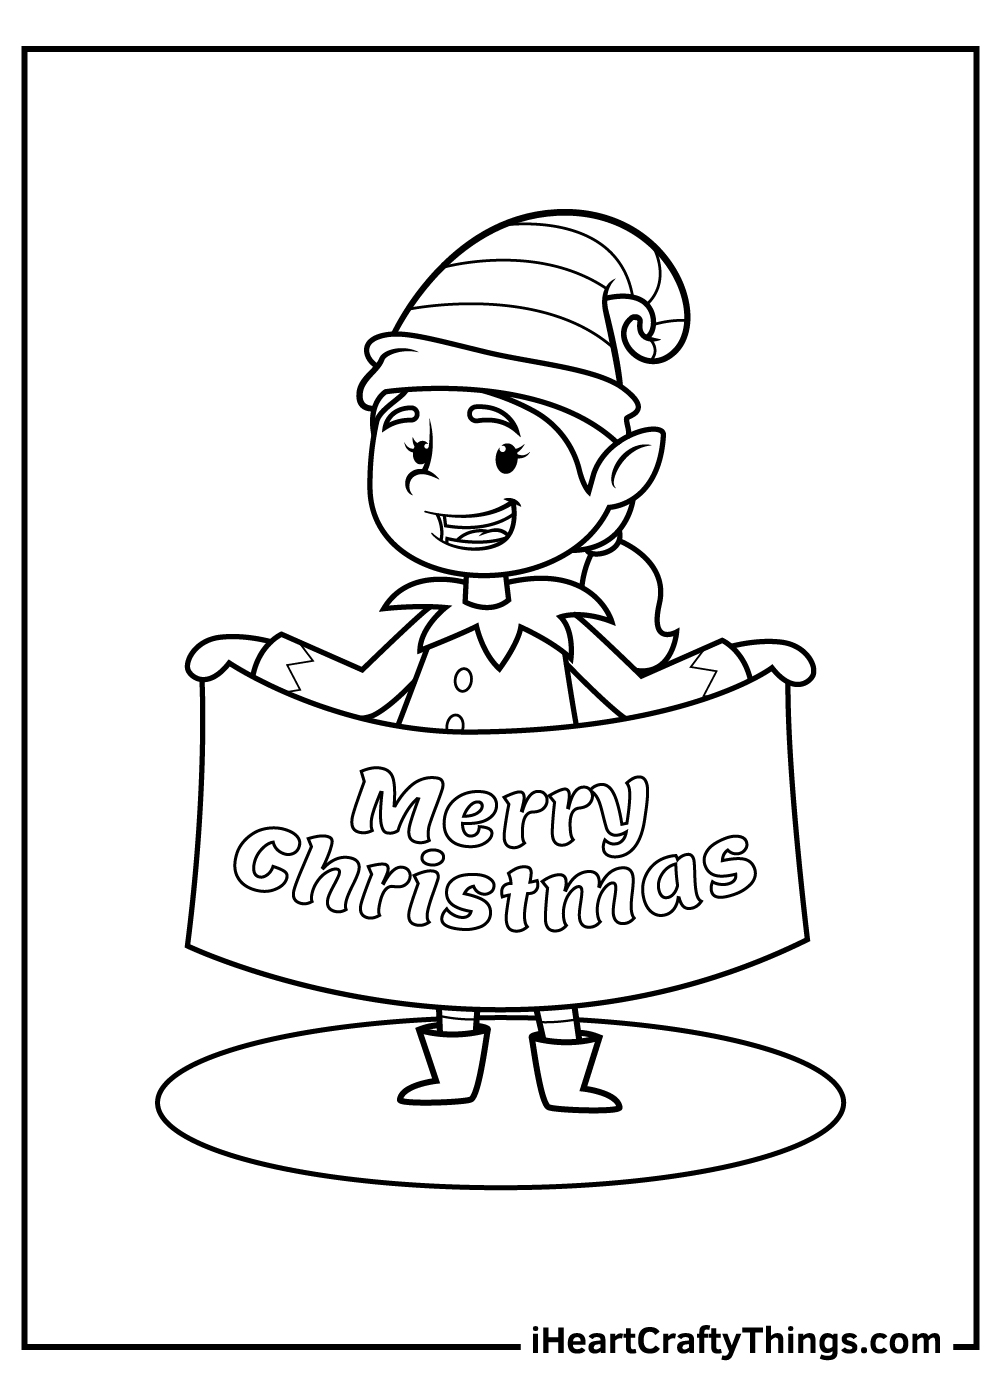 cute and funny christmas elves coloring pages